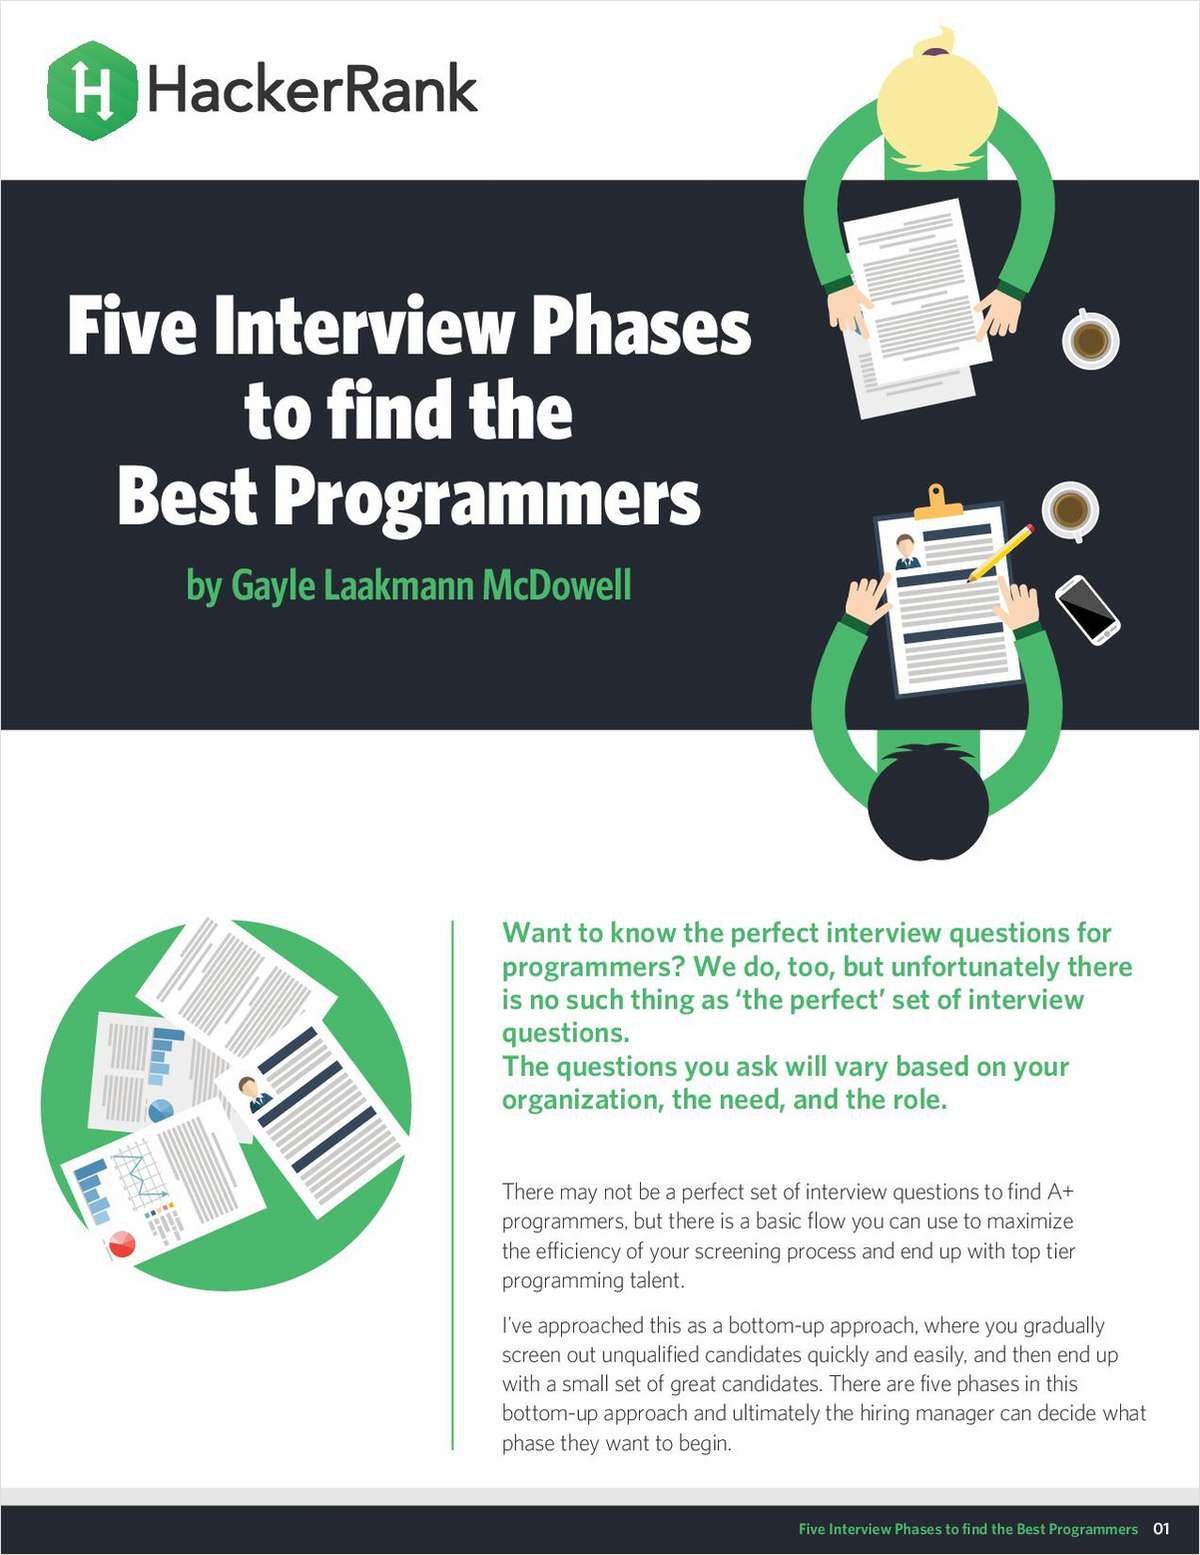 5 Interview Phases to Find the Best Programmers